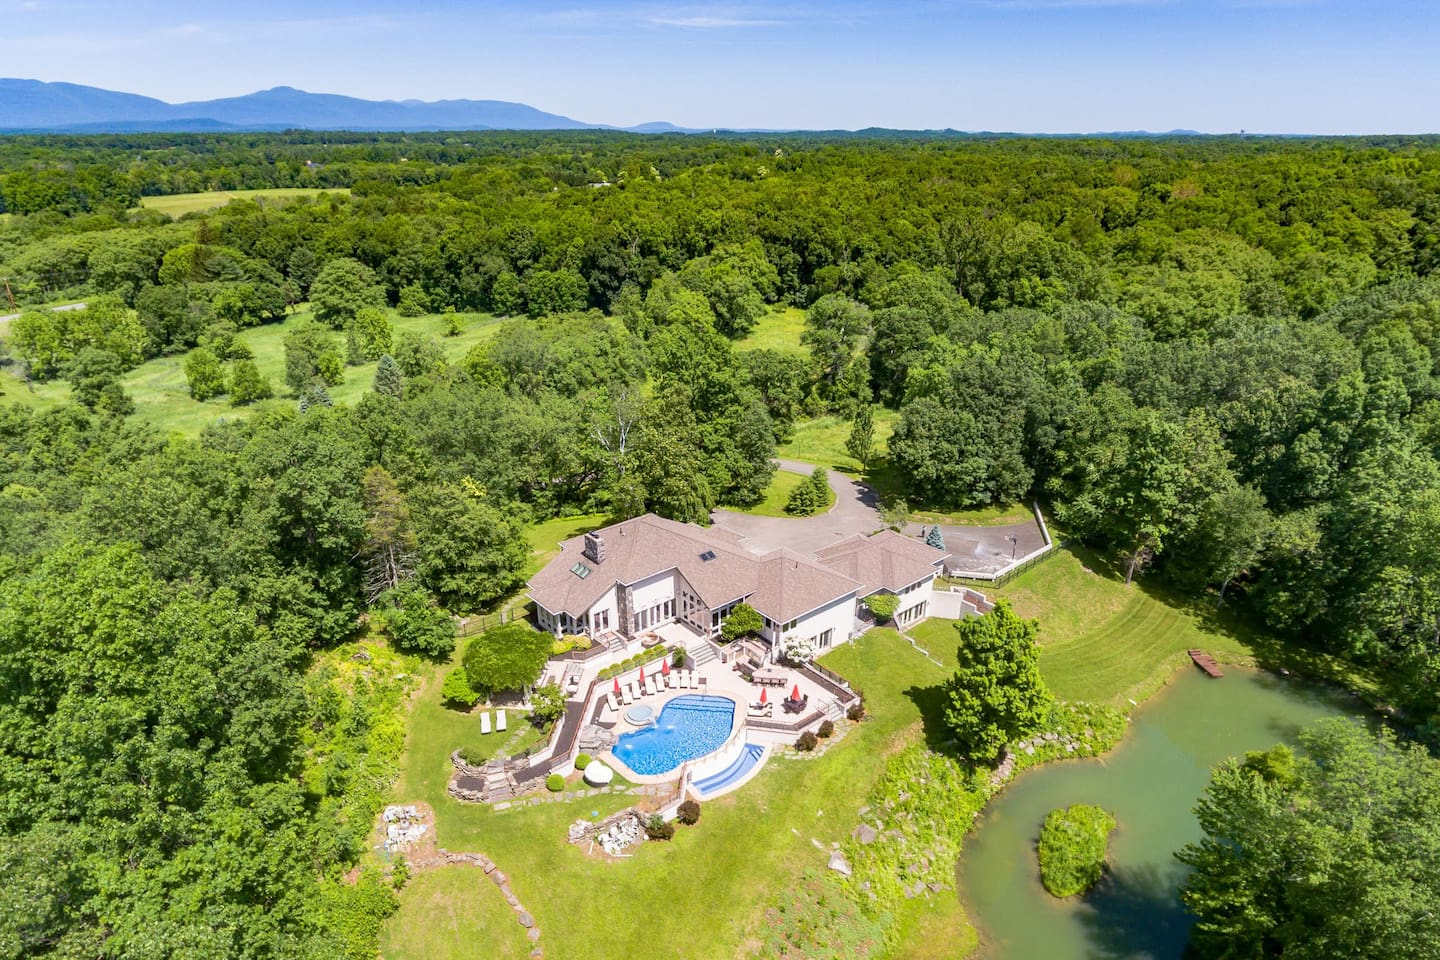 Aerial view-Exclusive Private 31 Acres Luxury Estate, Catskills Mountain Views in Background.